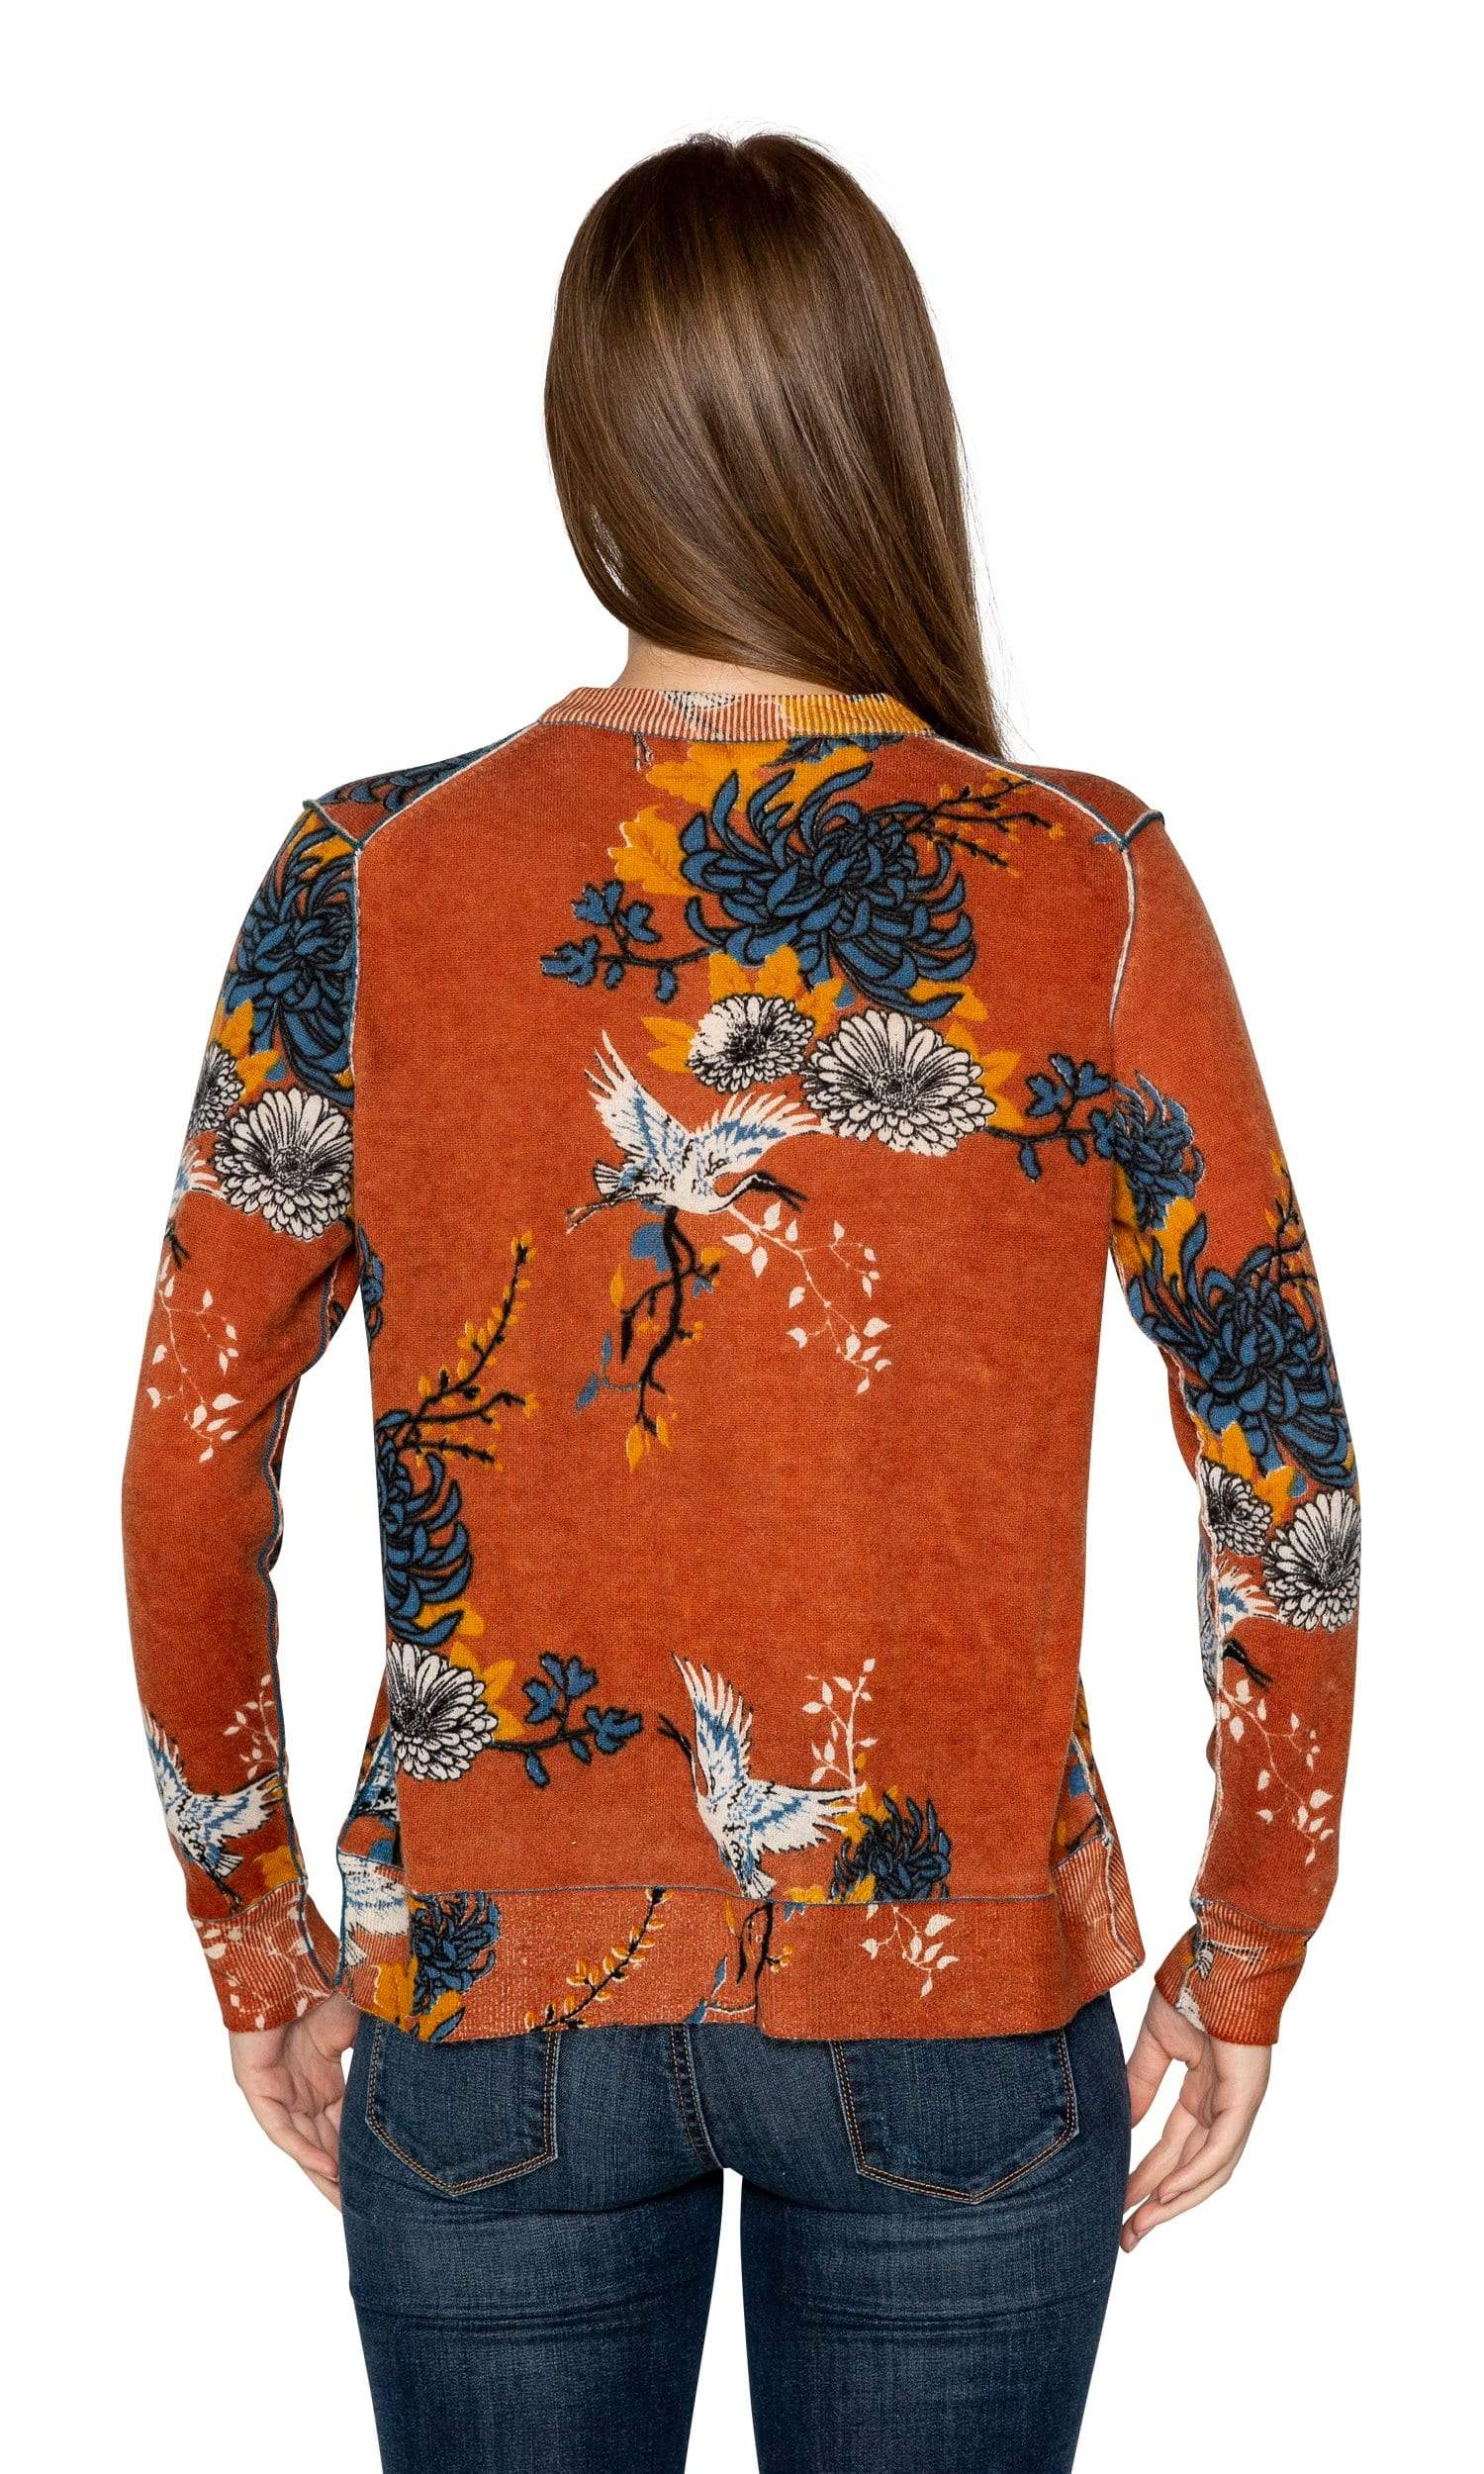 Knitwit Cashmere Comfy Crew - Japanese Floral